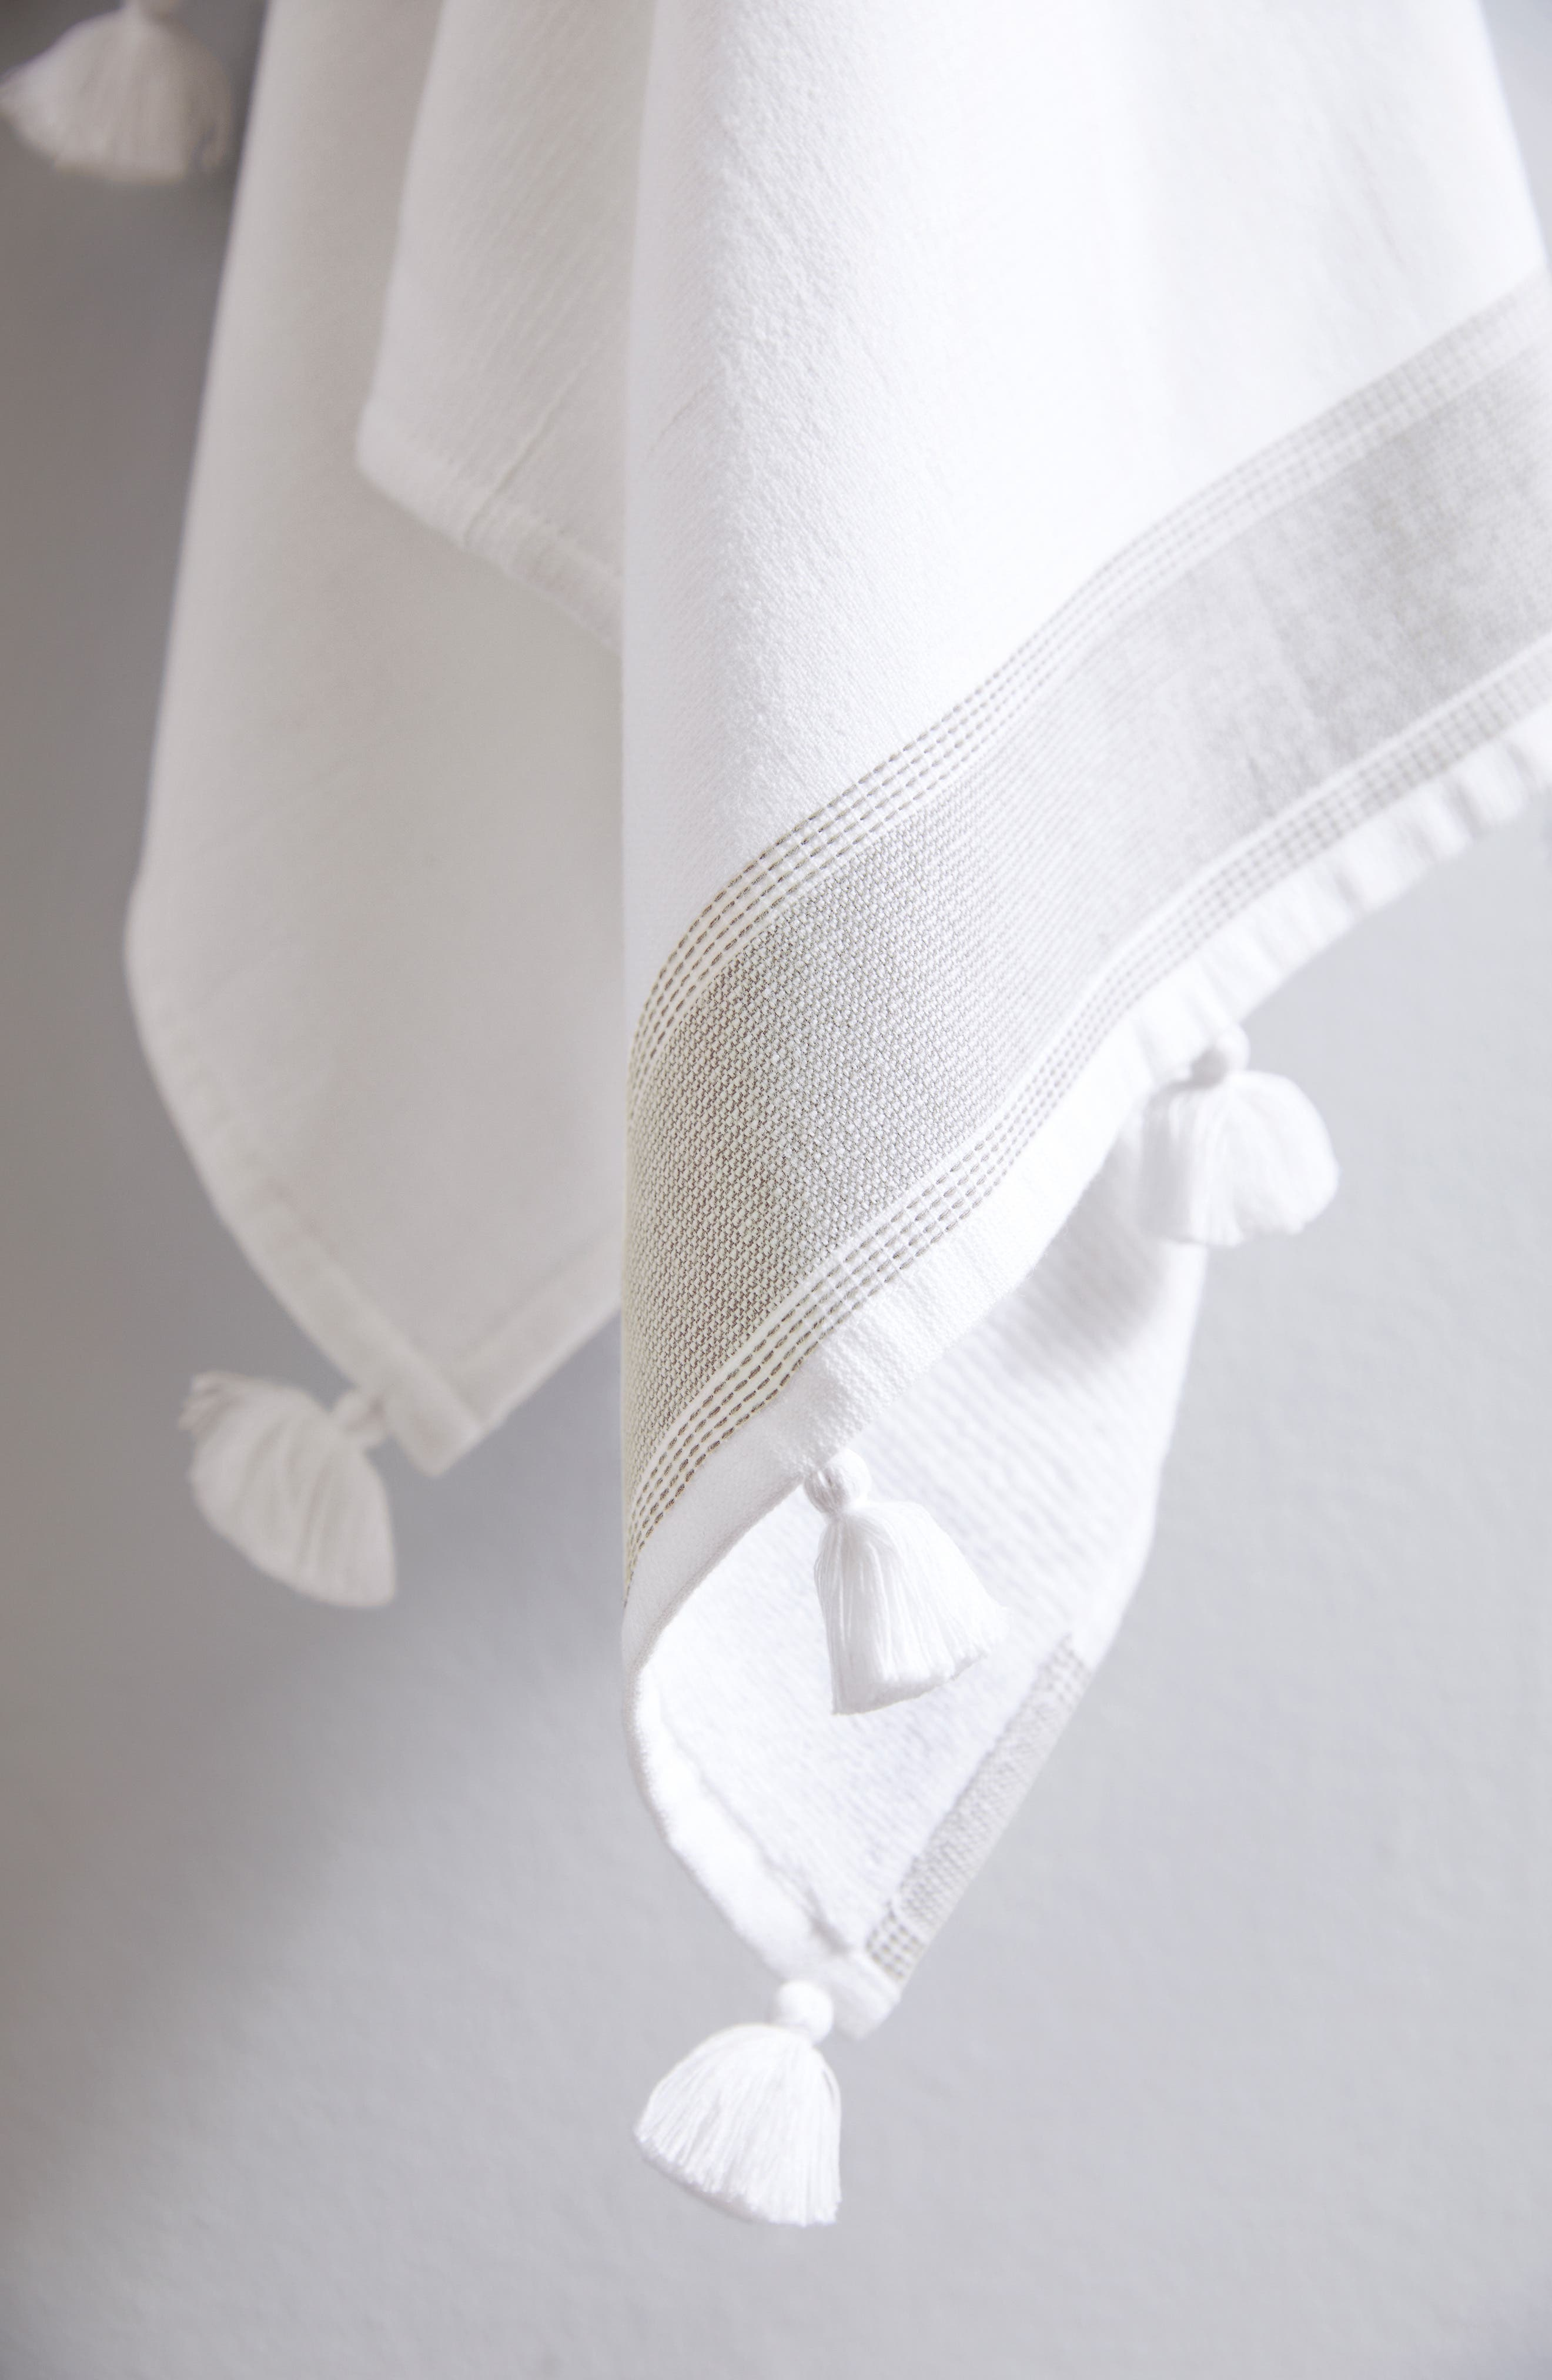 THE WHITE COMPANY,                             St. Ives Hammam Bath Towel,                             Alternate thumbnail 2, color,                             WHITE/ GREY